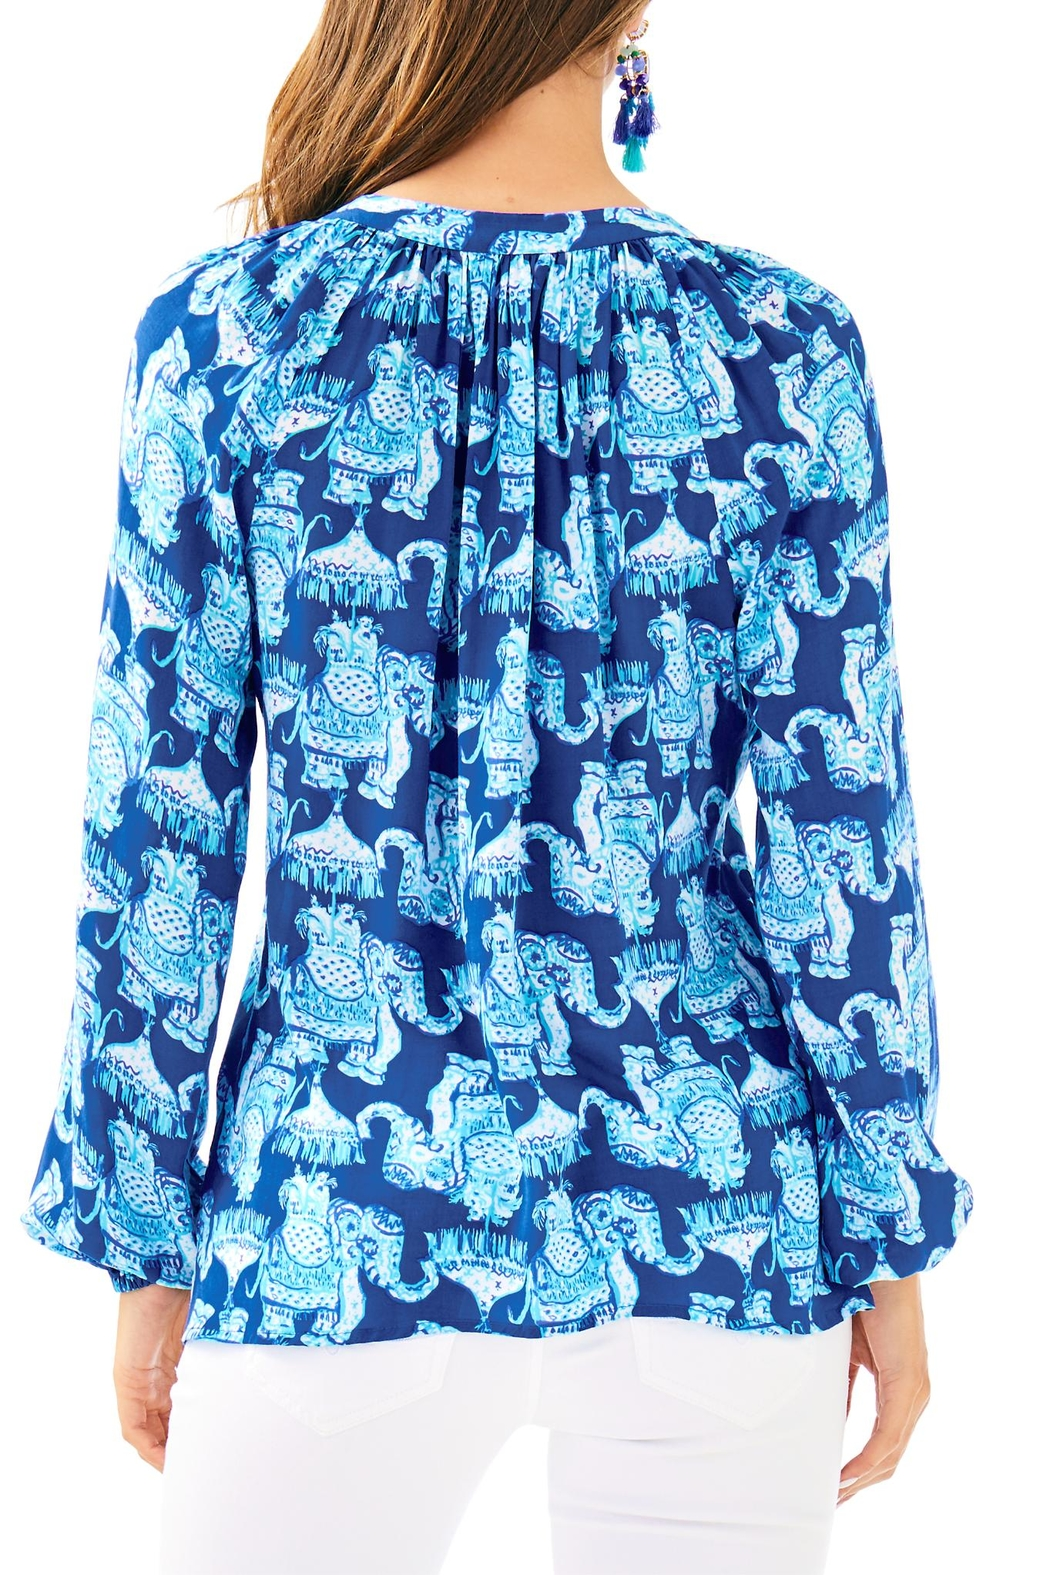 Lilly Pulitzer Martinique Top - Front Full Image